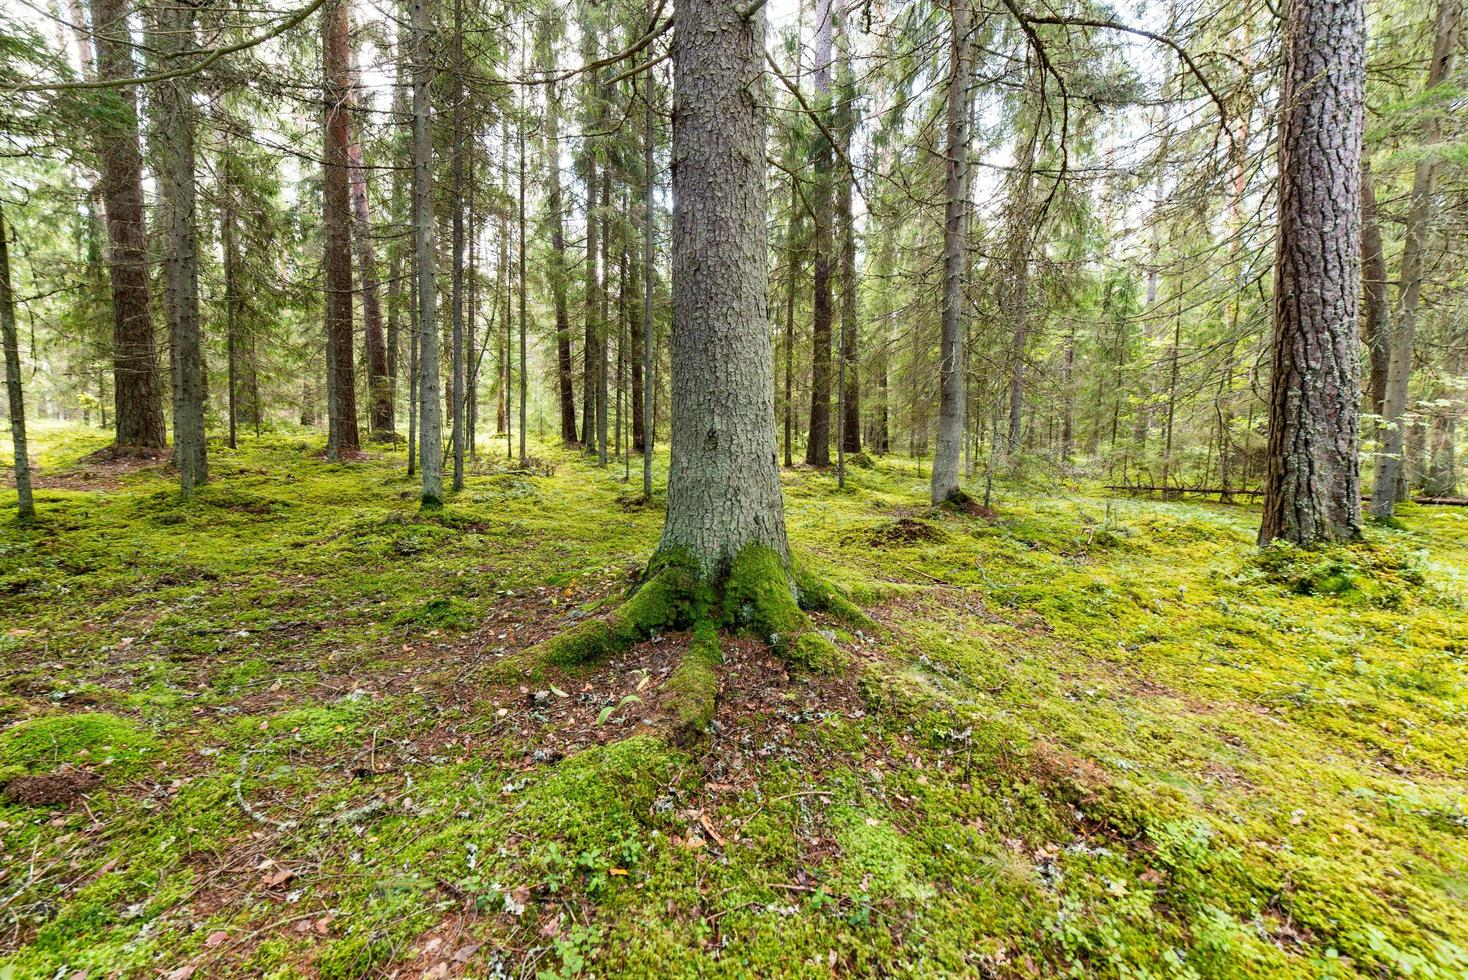 trees in green forest with moss and autumn colors photo